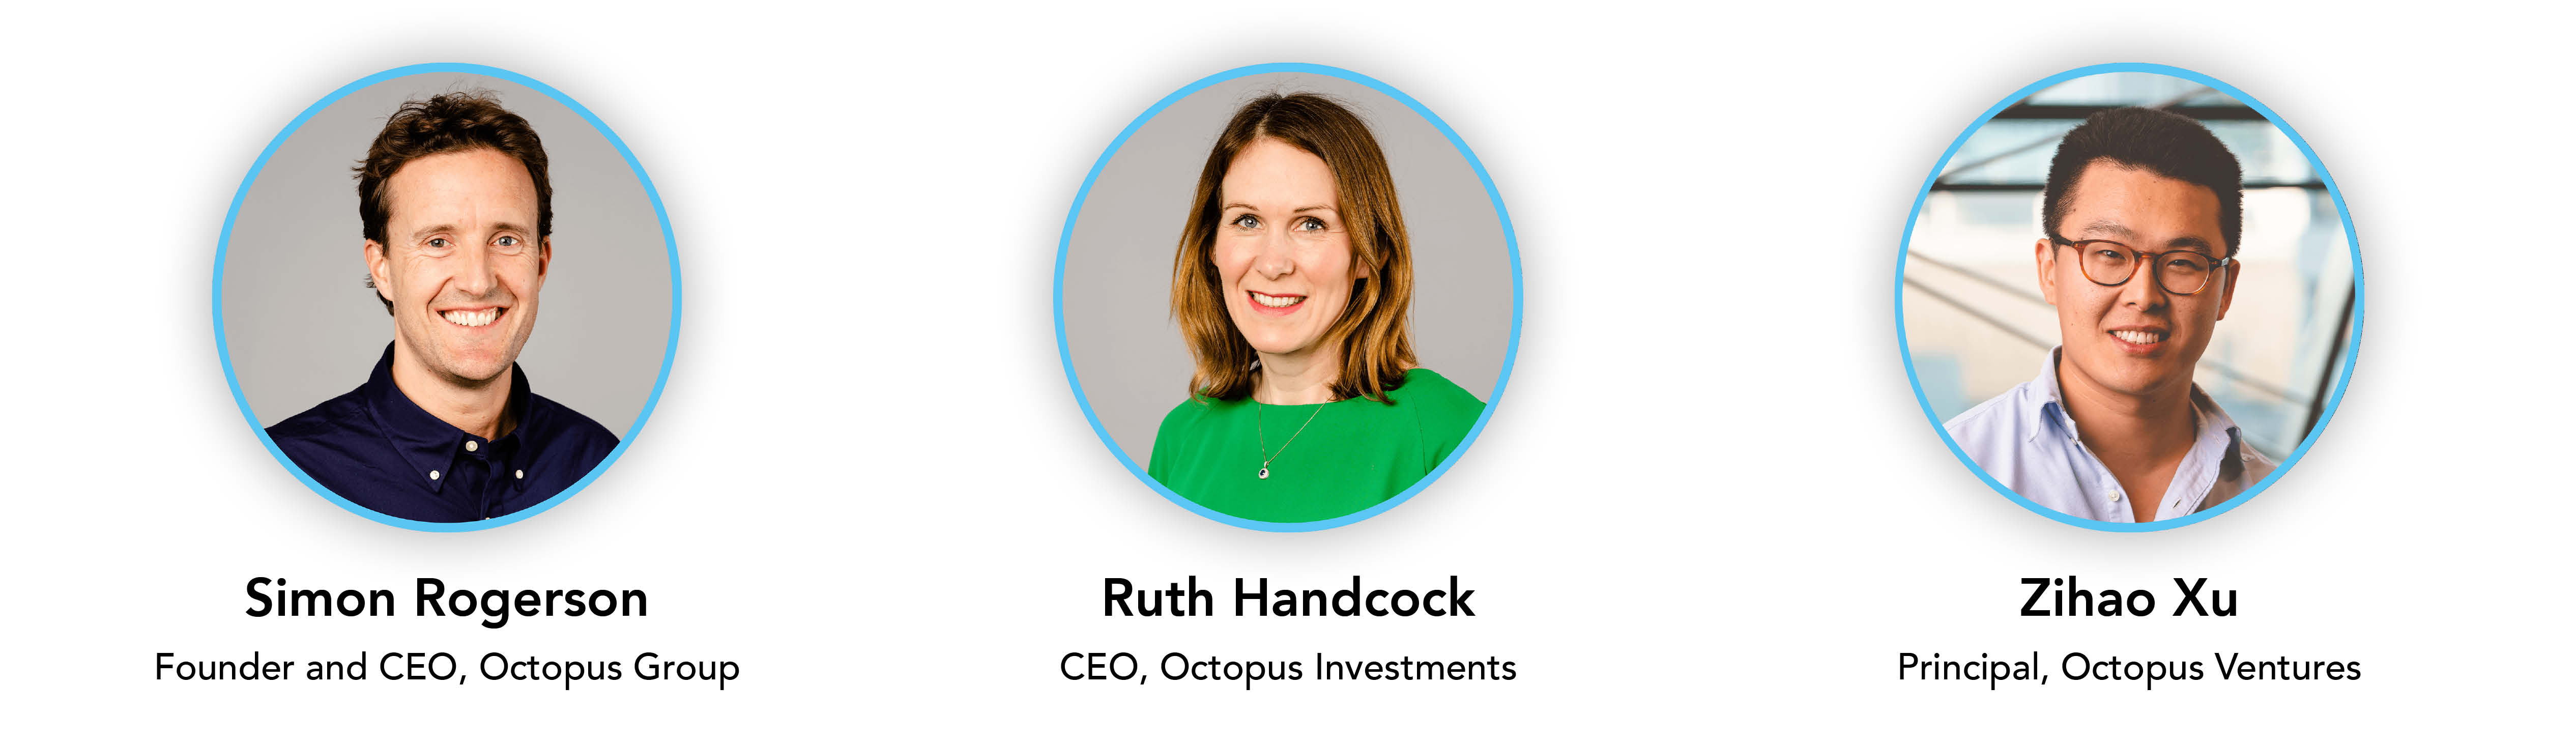 The pitching panel: Simon Rogerson, Founder and CEO of Octopus Group; Ruth Handcock, CEO of Octopus Investments; and Zihao Xu, Principal at Octopus Ventures